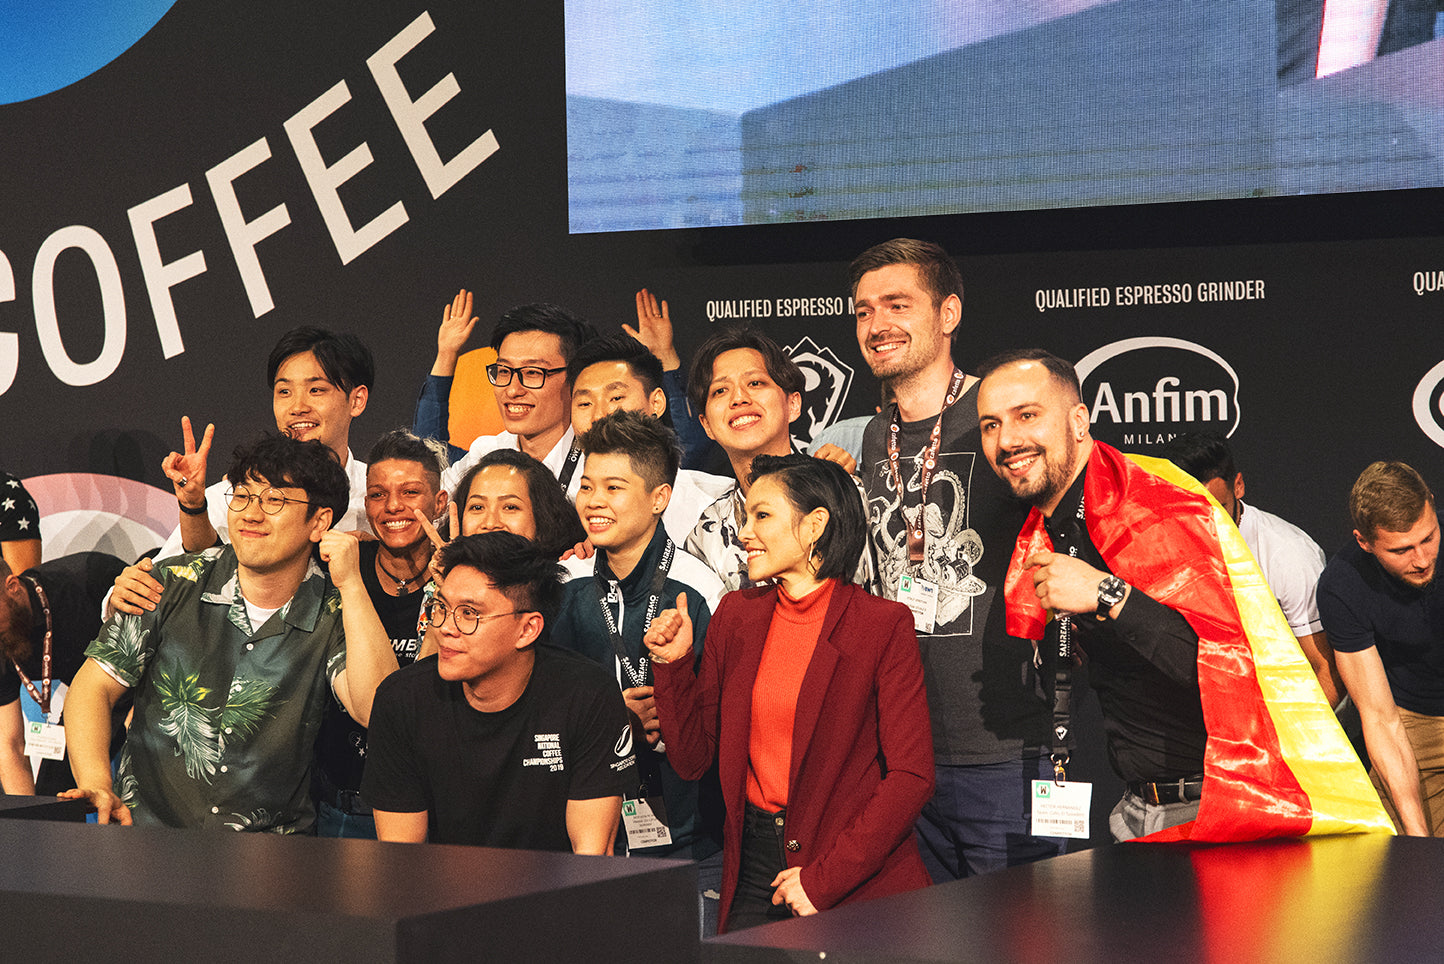 world latte art championship 2019